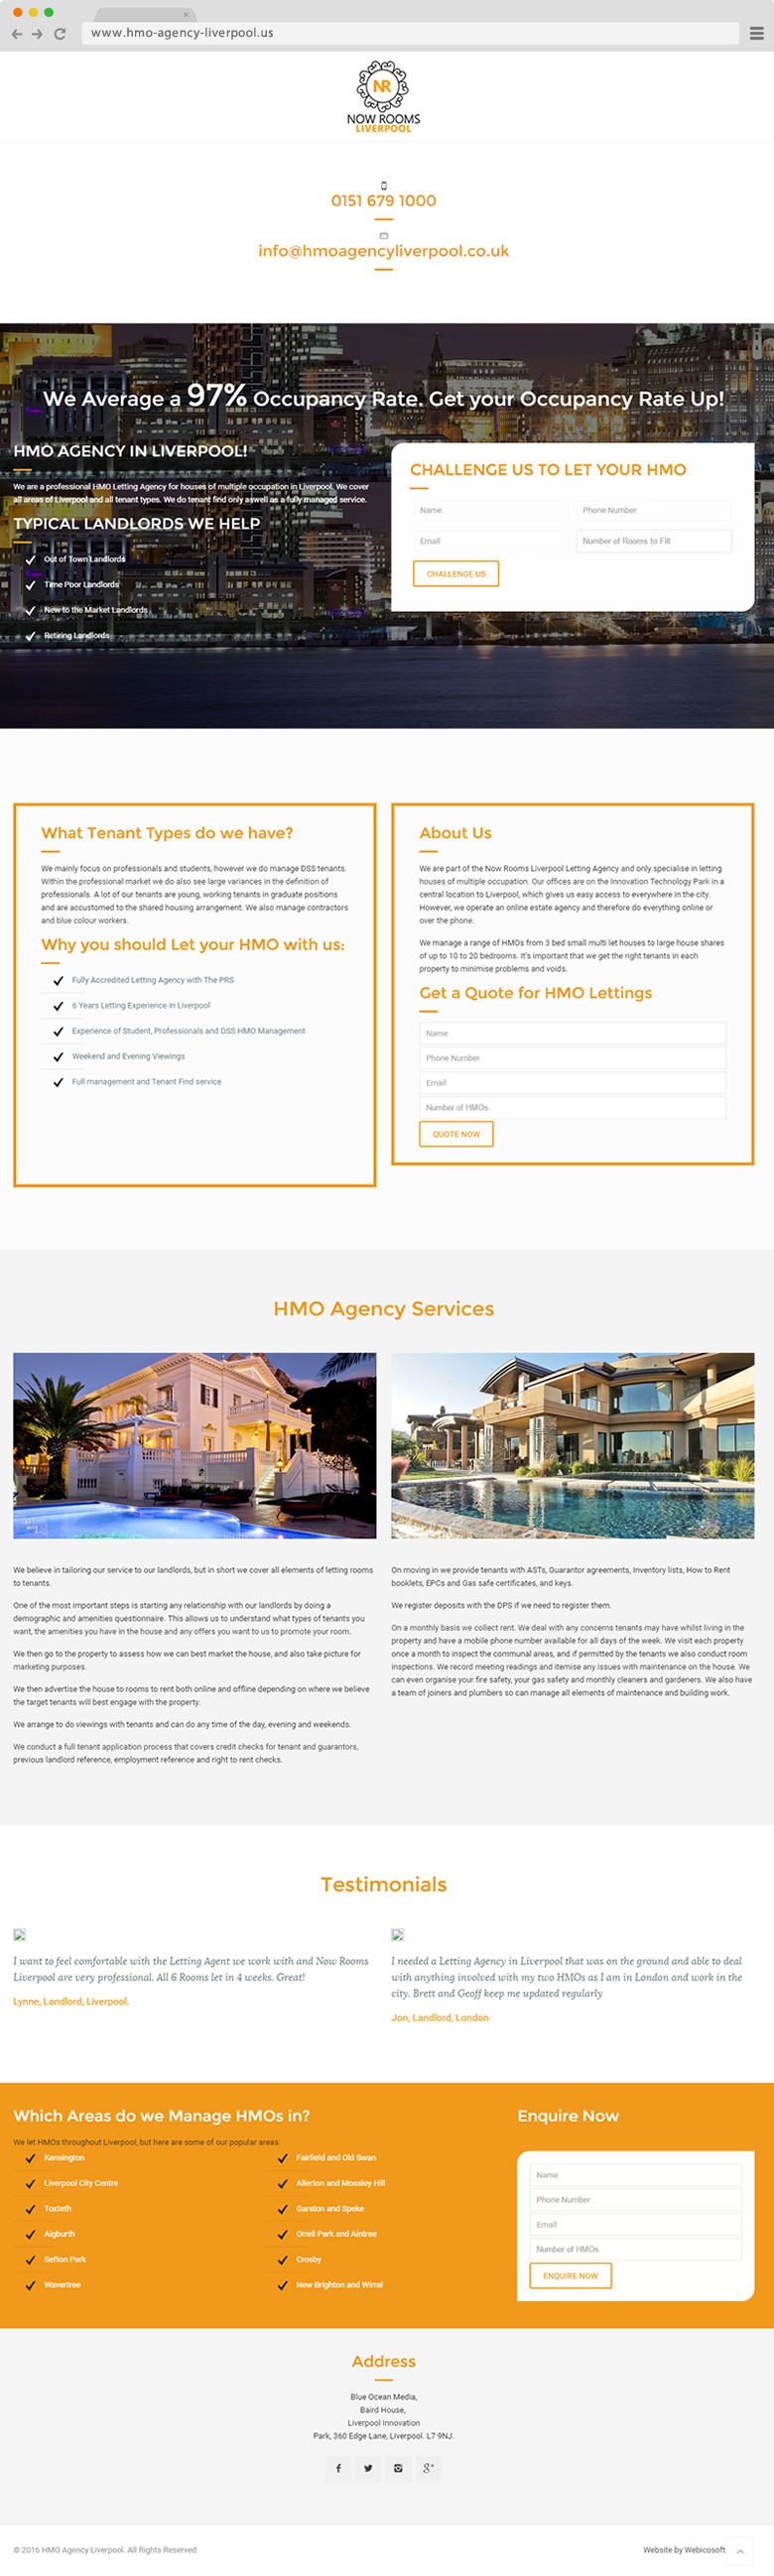 HMO Agency Liverpool